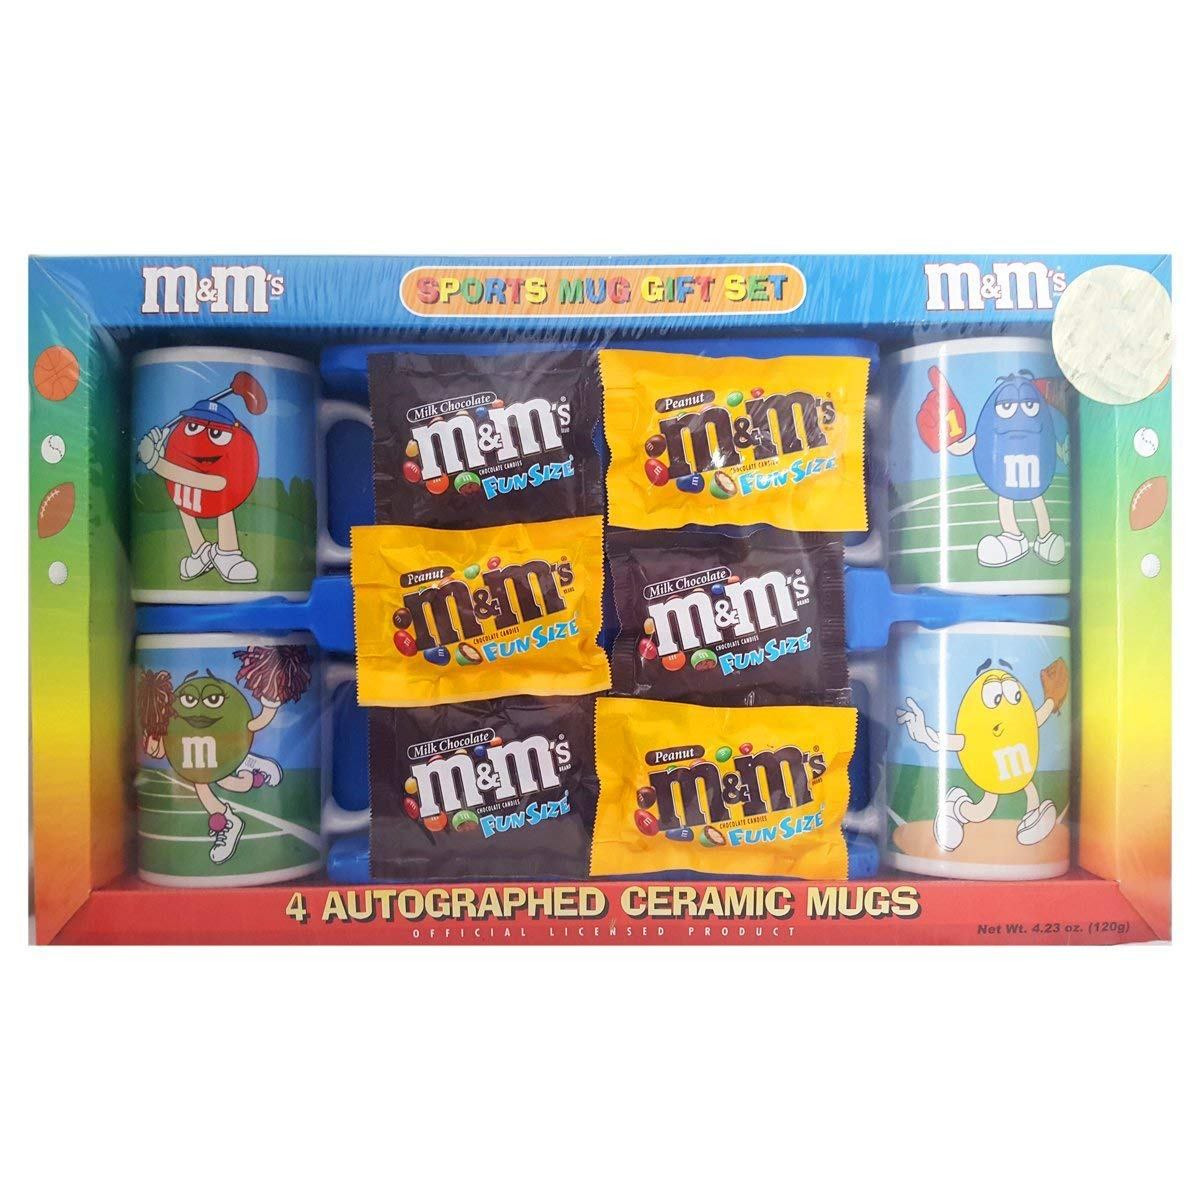 Collectible 2004 M&M Gift Set 4 Autographed Ceramic Sports Mugs, Includes Candy